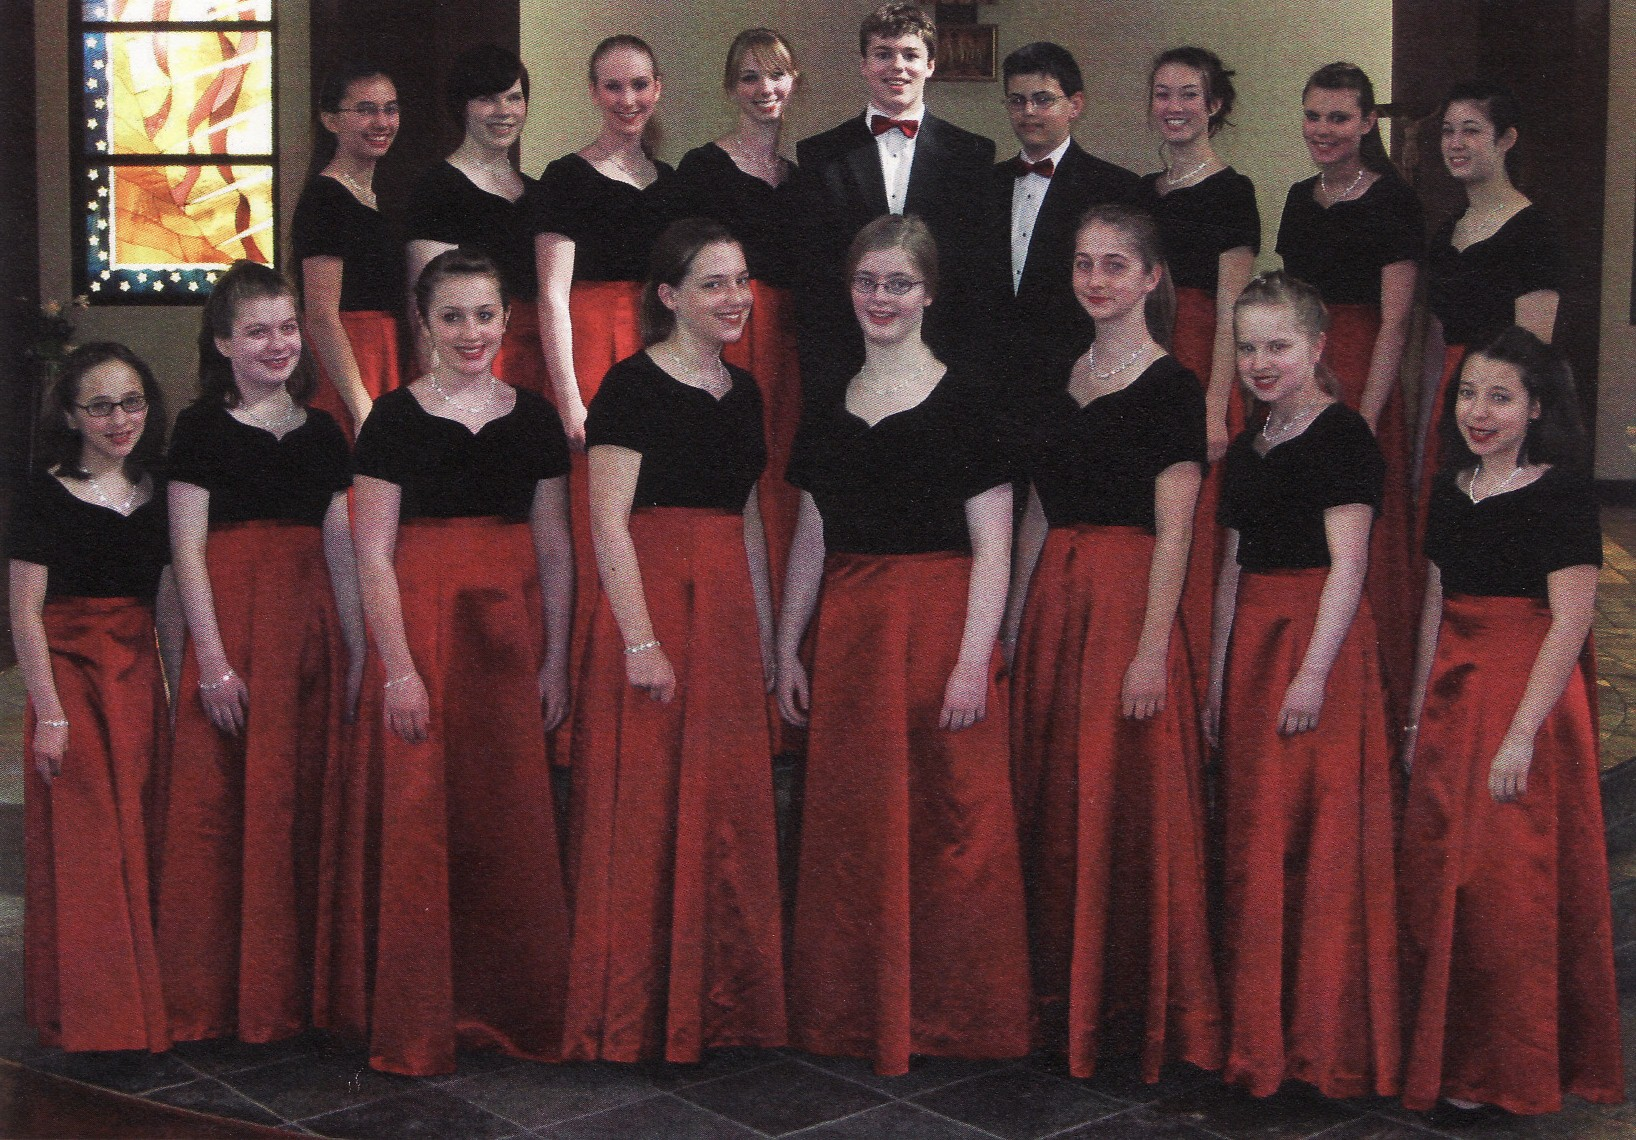 AlaskaChildrensChoir